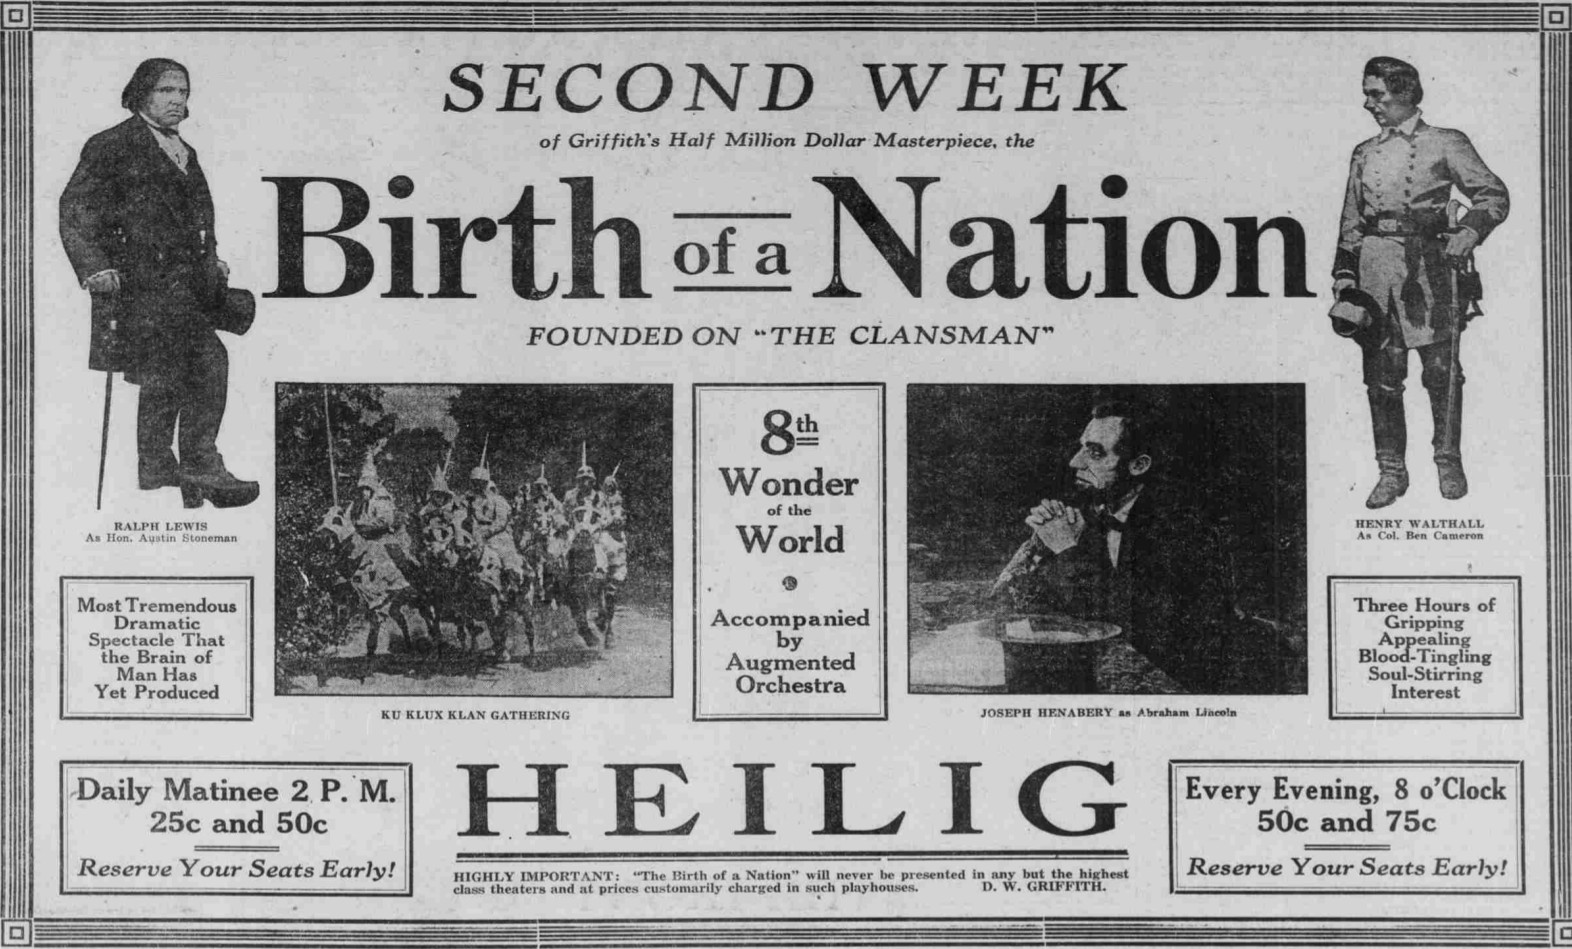 a review of the films the birth of a nation 1915 and greed 1924 Pioneering efforts including georges méliès' a trip to the moon(1902), cecil b de mille's the squaw man (1914) and such dw griffith films as the birth of a nation (1915), intolerance (1916) and orphans of the storm (1921).